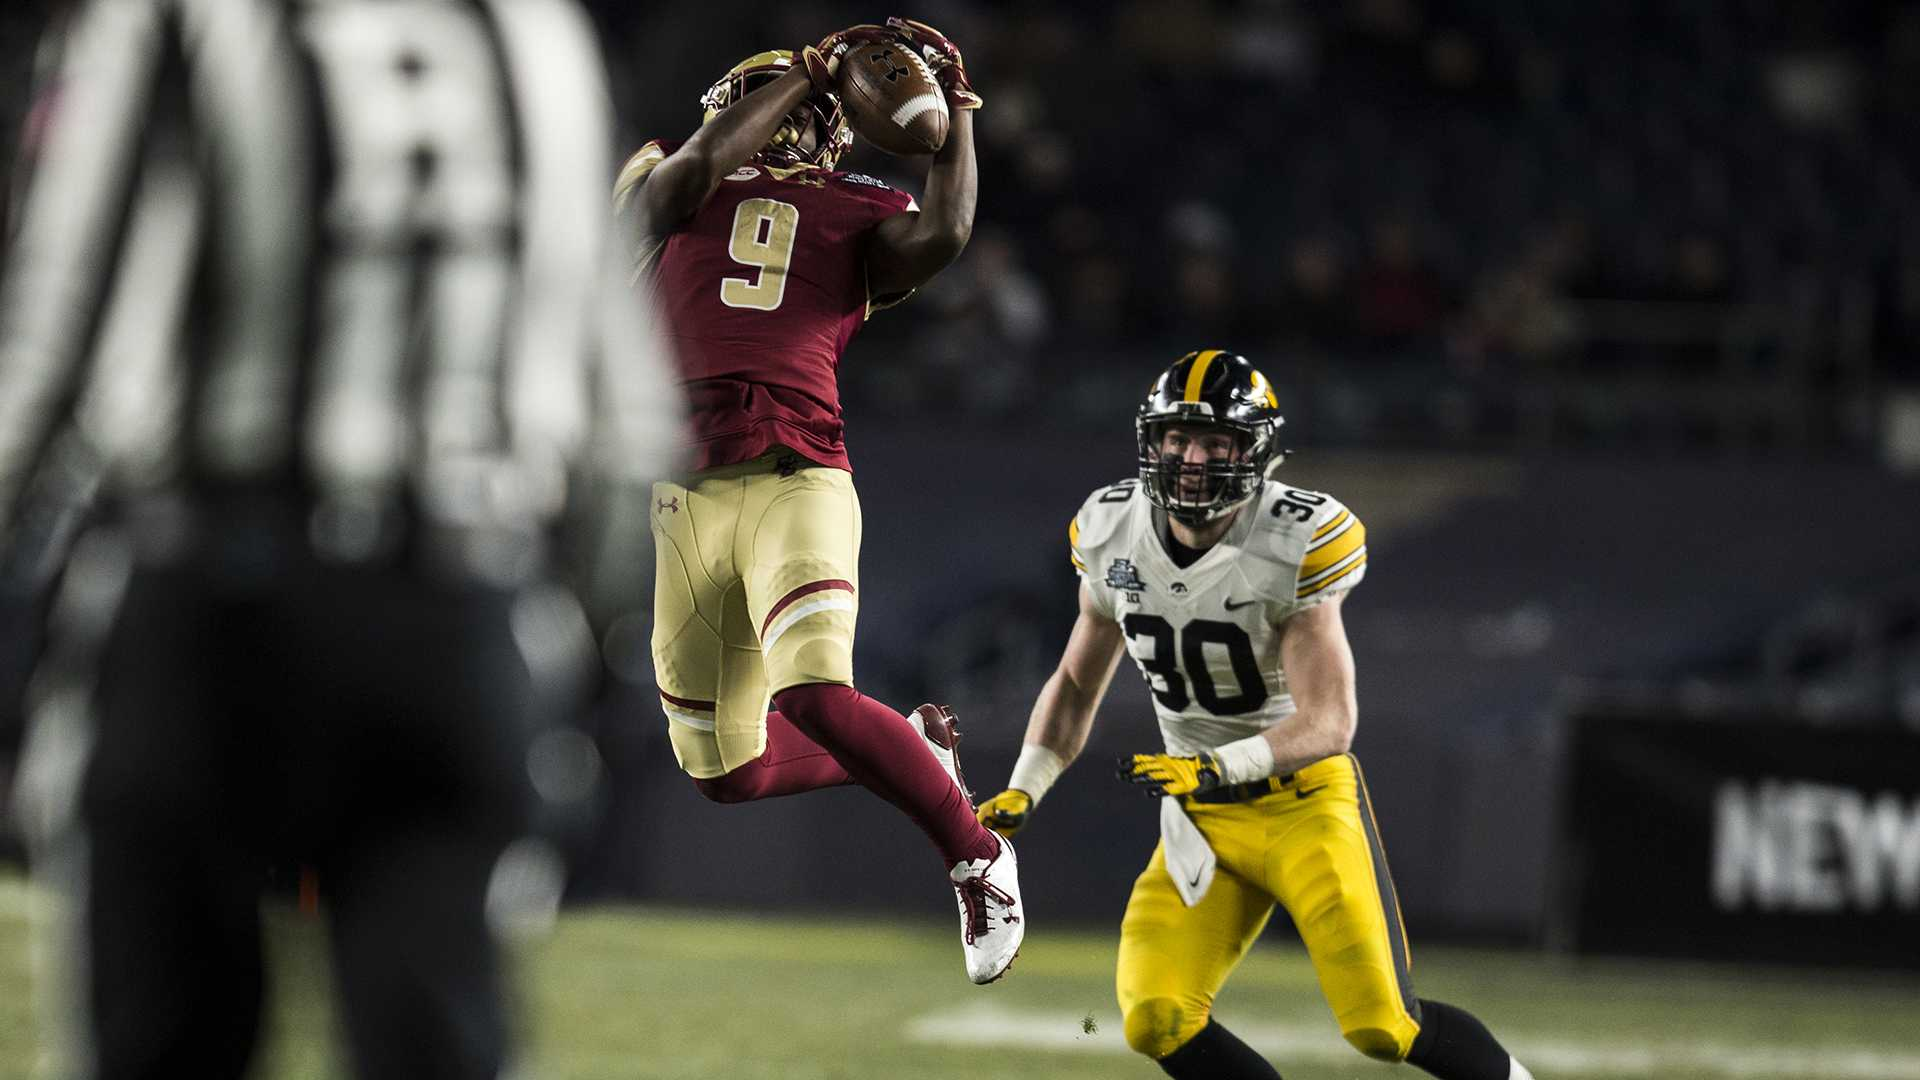 Boston College wide receiver Kobay White (9) catches the ball over Iowa's Jake Gervase (30) during the first half of the New Era Pinstripe Bowl at Yankee Stadium in New York on Wednesday, Dec. 27. The score going into the second half is 17-10. (Ben Allan Smith/The Daily Iowan)